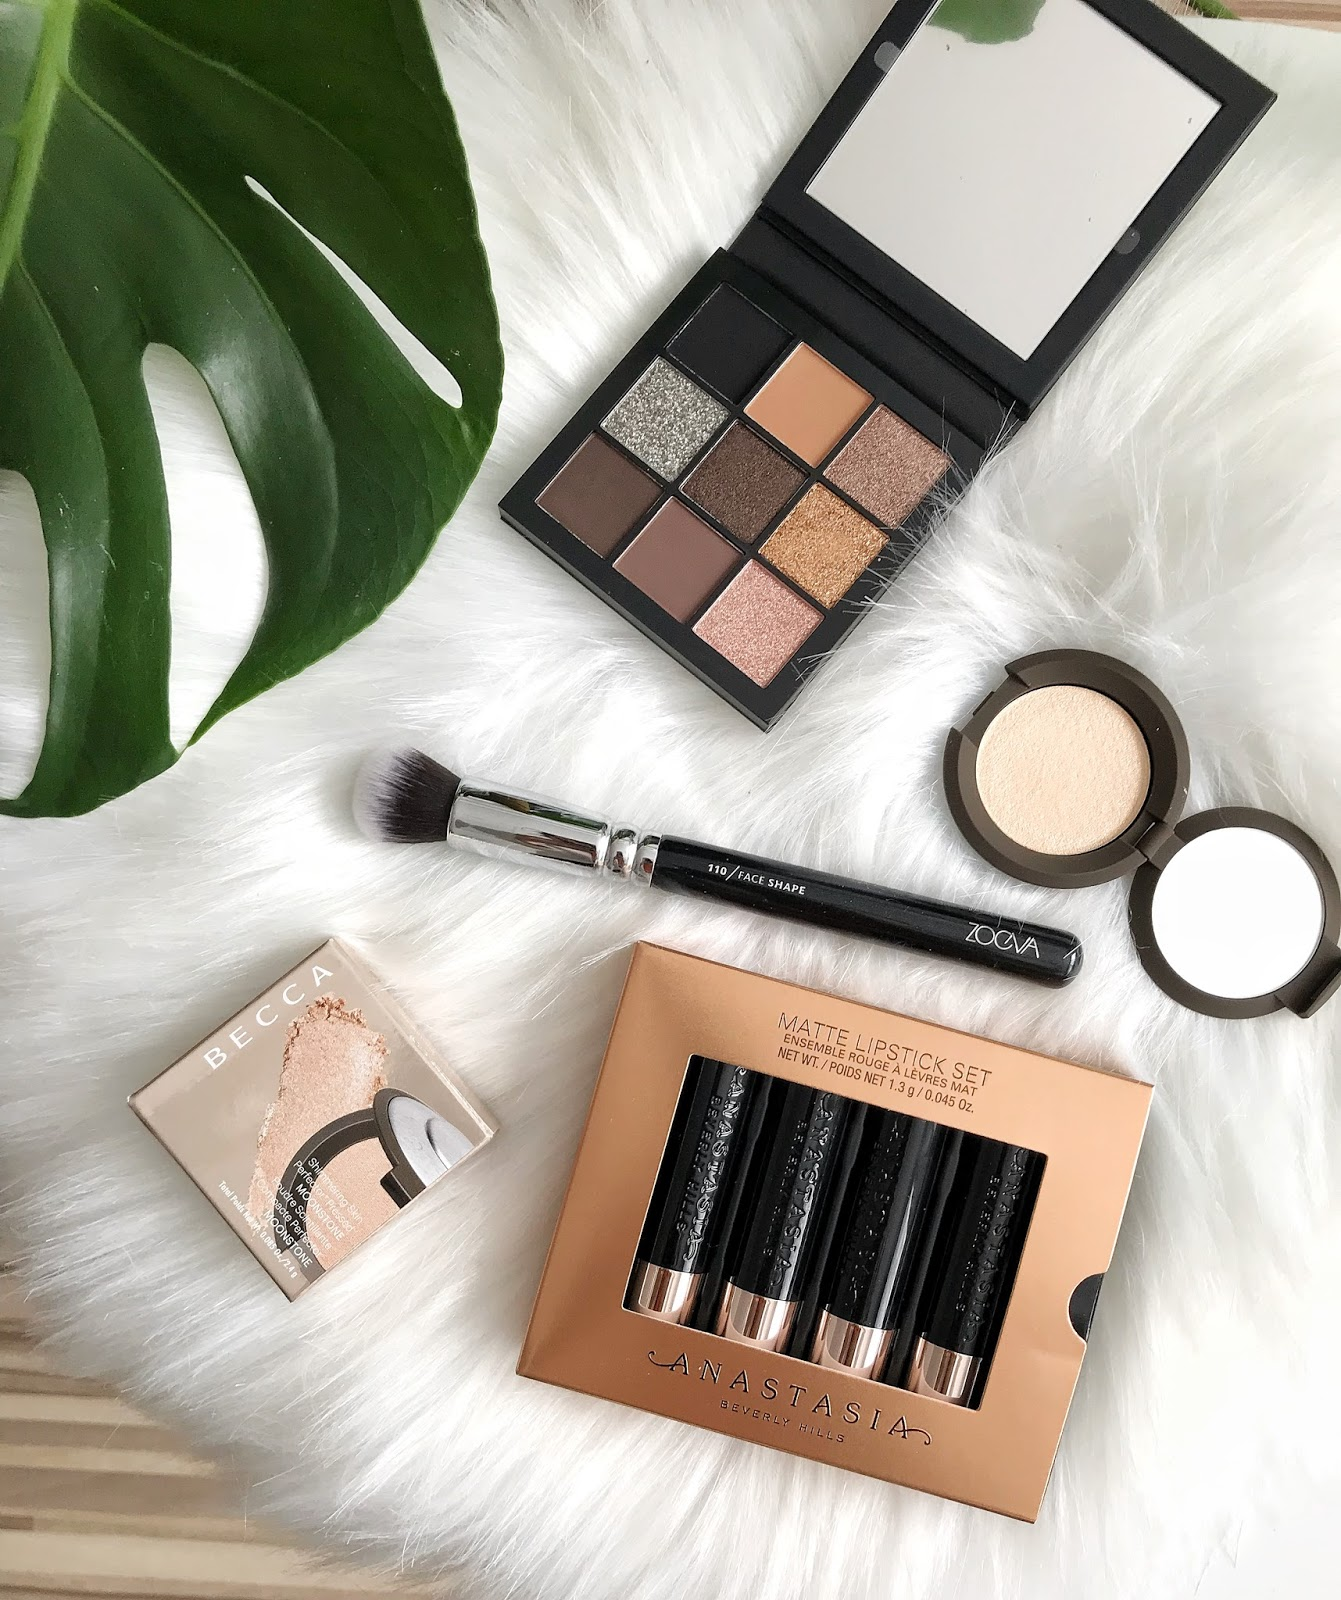 ANASTASIA BEVERLY HILLS Mini Matte Lipstick Set - Nudes,  ZOEVA Face Shape Brush 110, BECCA Shimmering Skin Perfector Pressed Highlighter Mini Moonstone, HUDA BEAUTY Smokey Obsessions Palette